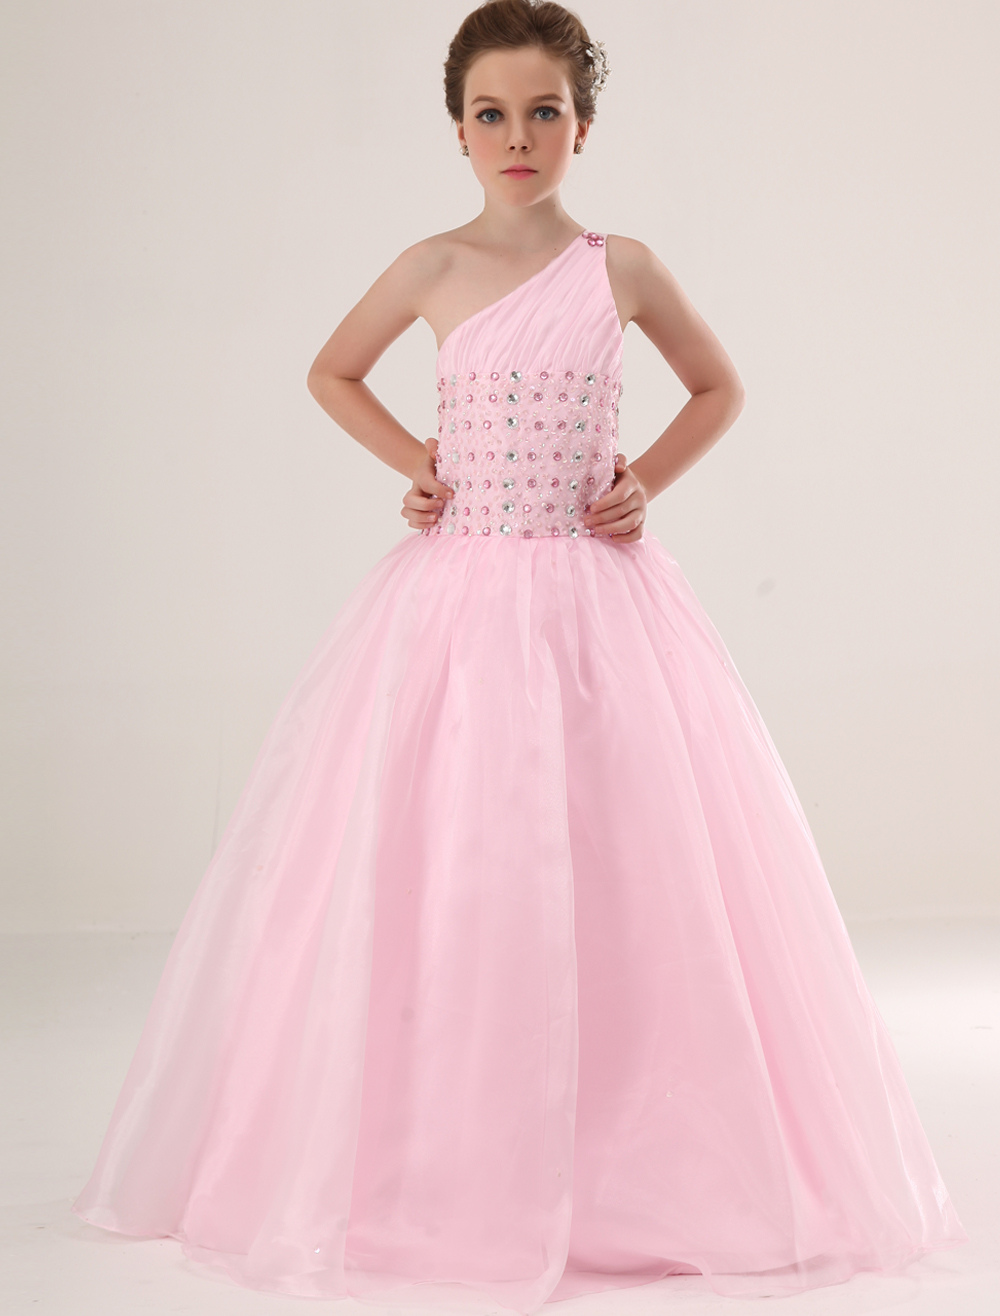 pink a line one shoulder satin floor length flower girl dress. Black Bedroom Furniture Sets. Home Design Ideas